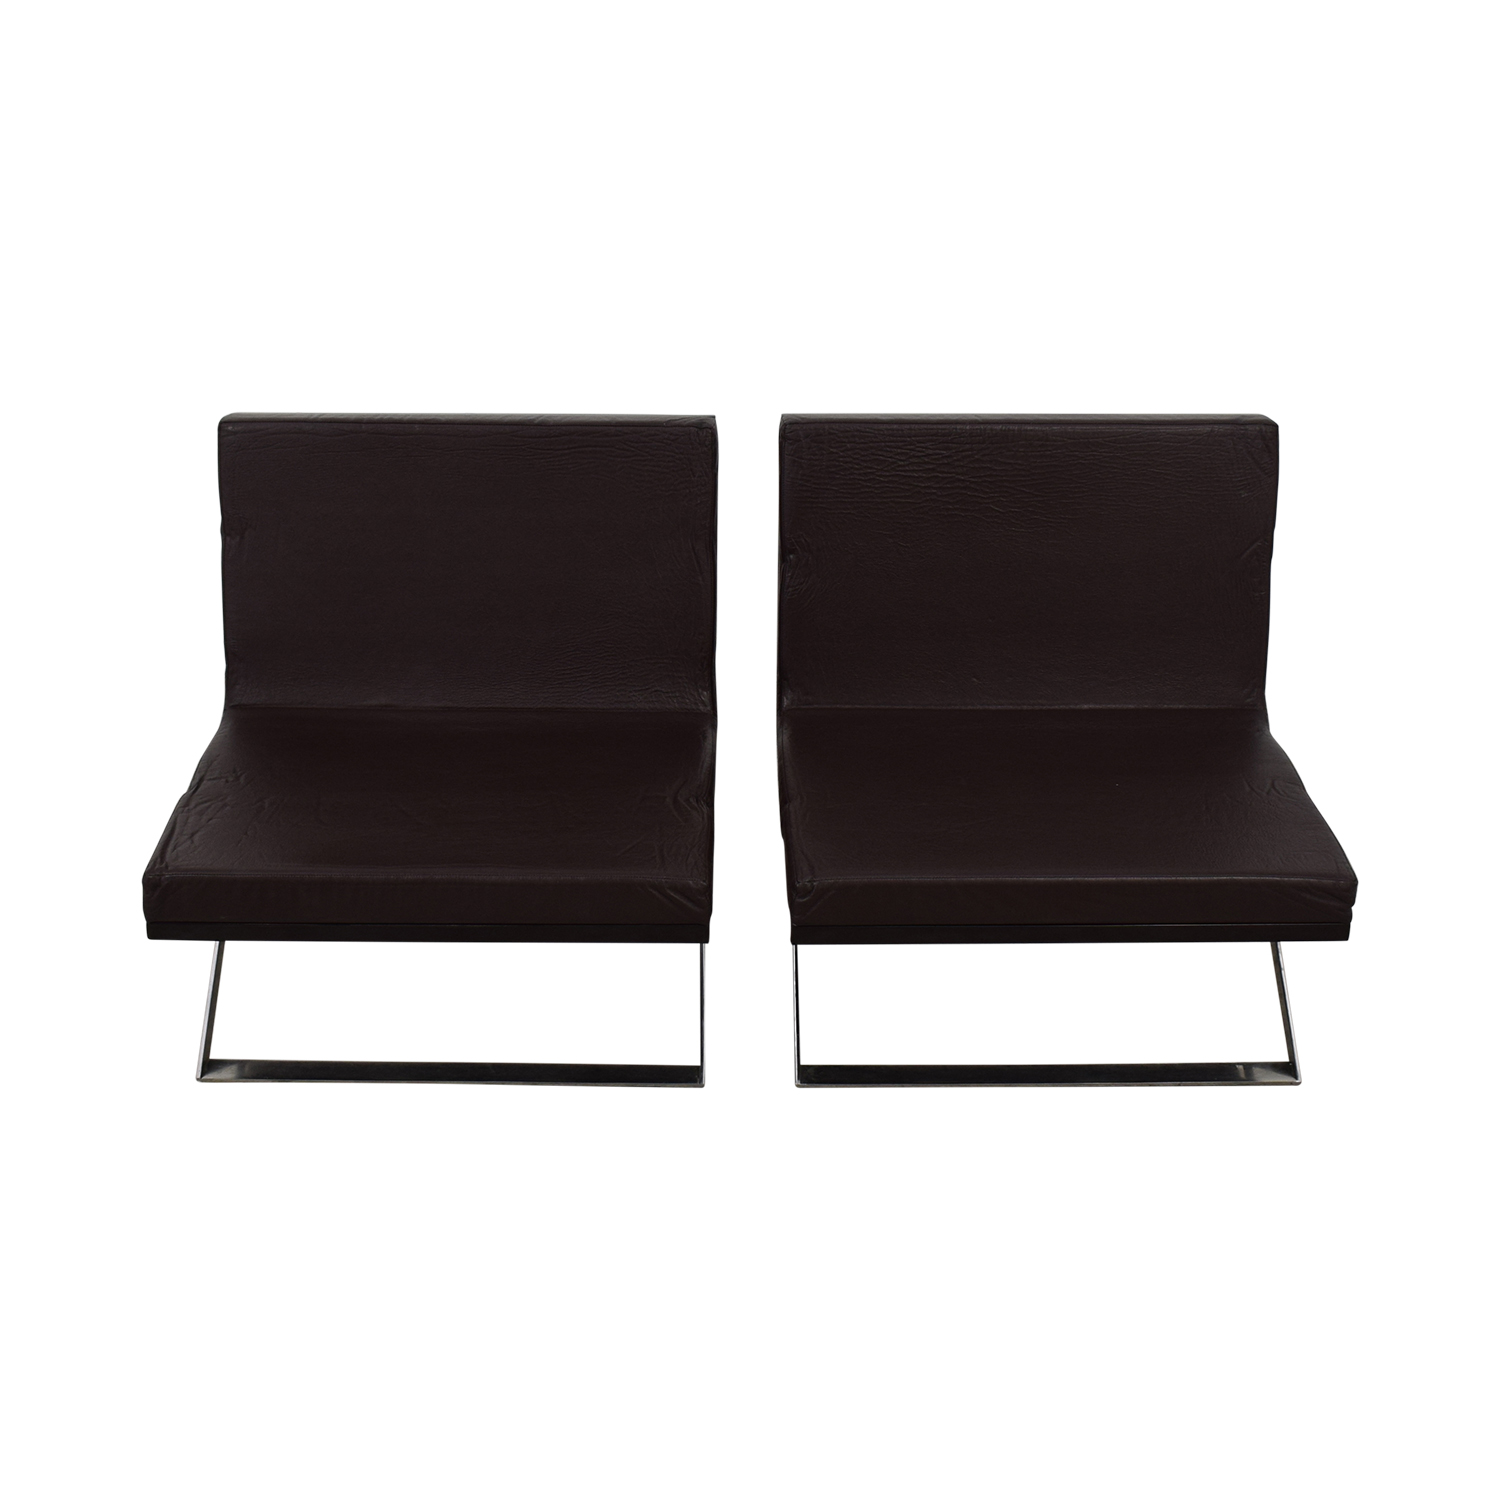 Louis Kazan Louis Kazan Kalup Occasional Chairs discount